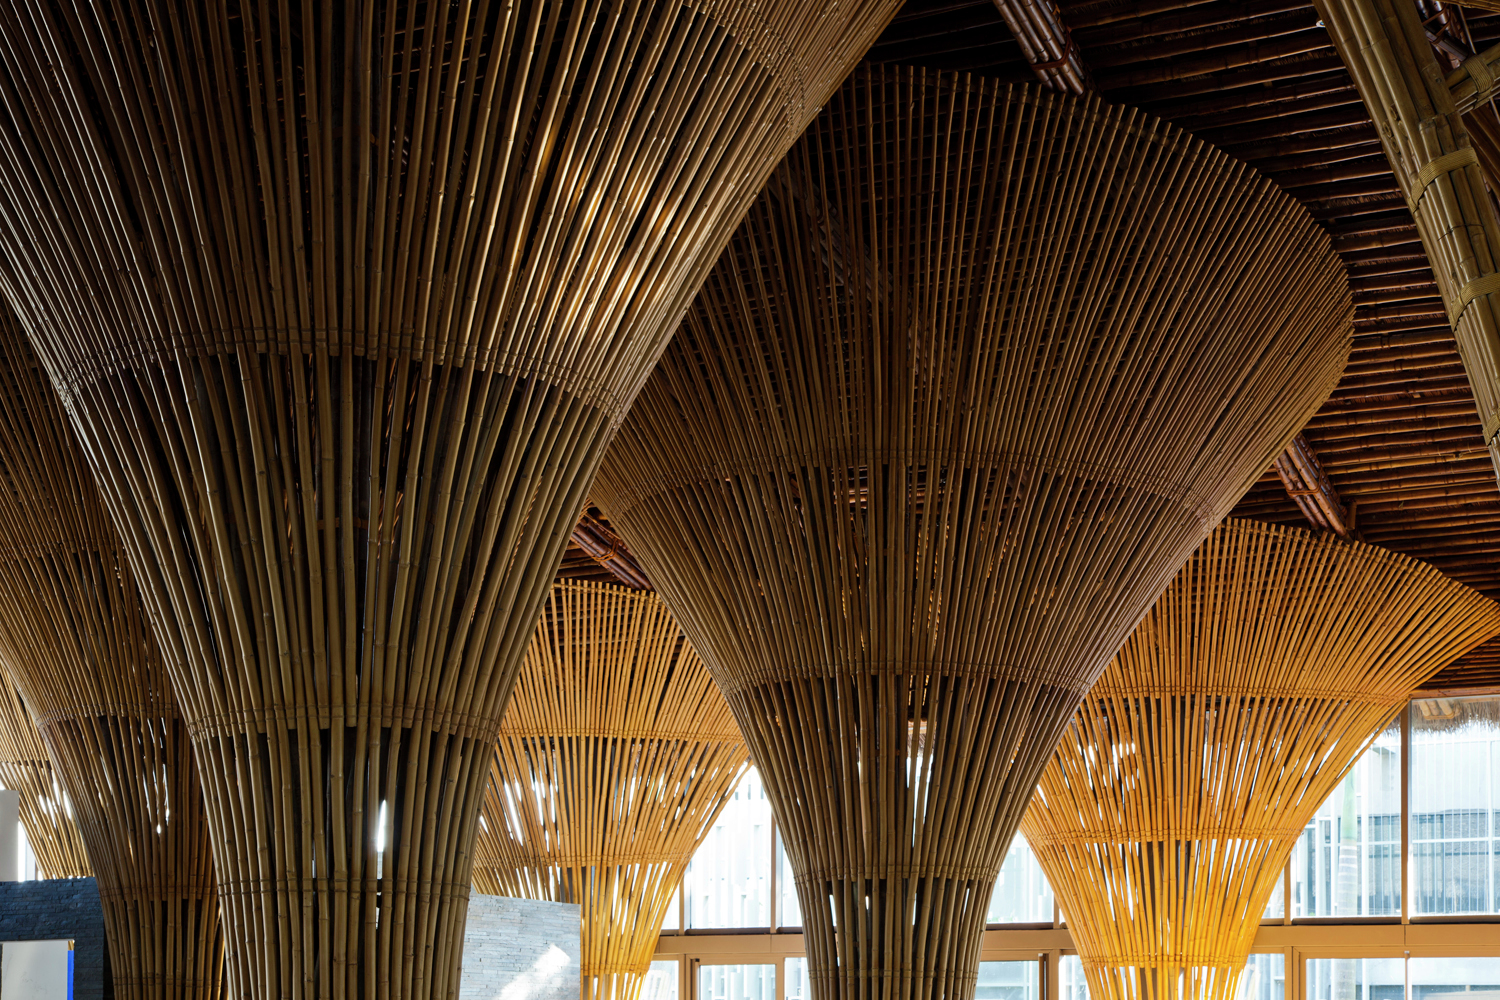 07_detail-of-bamboo-column